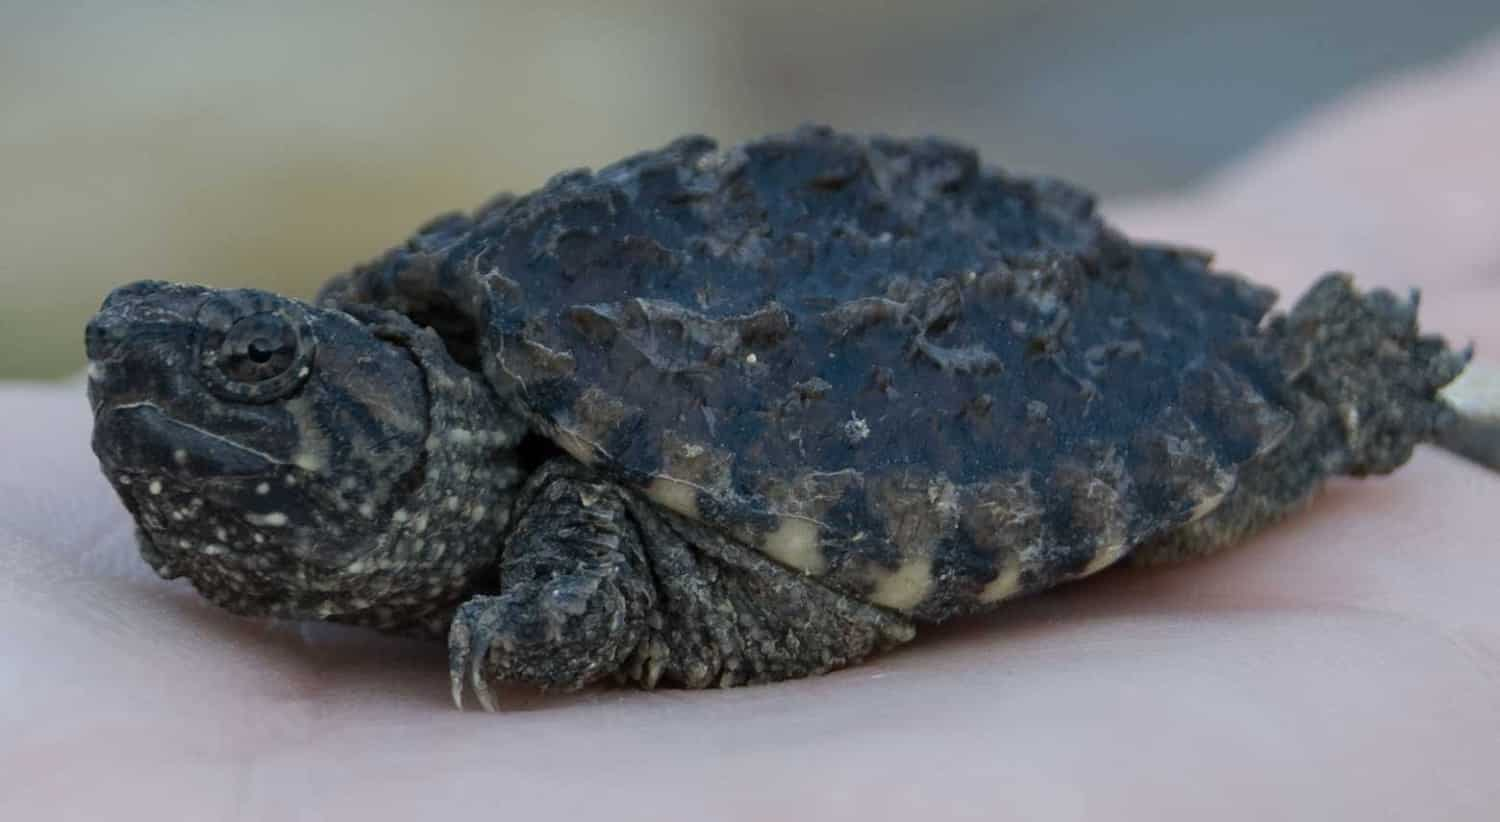 Baby Alligator Snapping Turtle Food